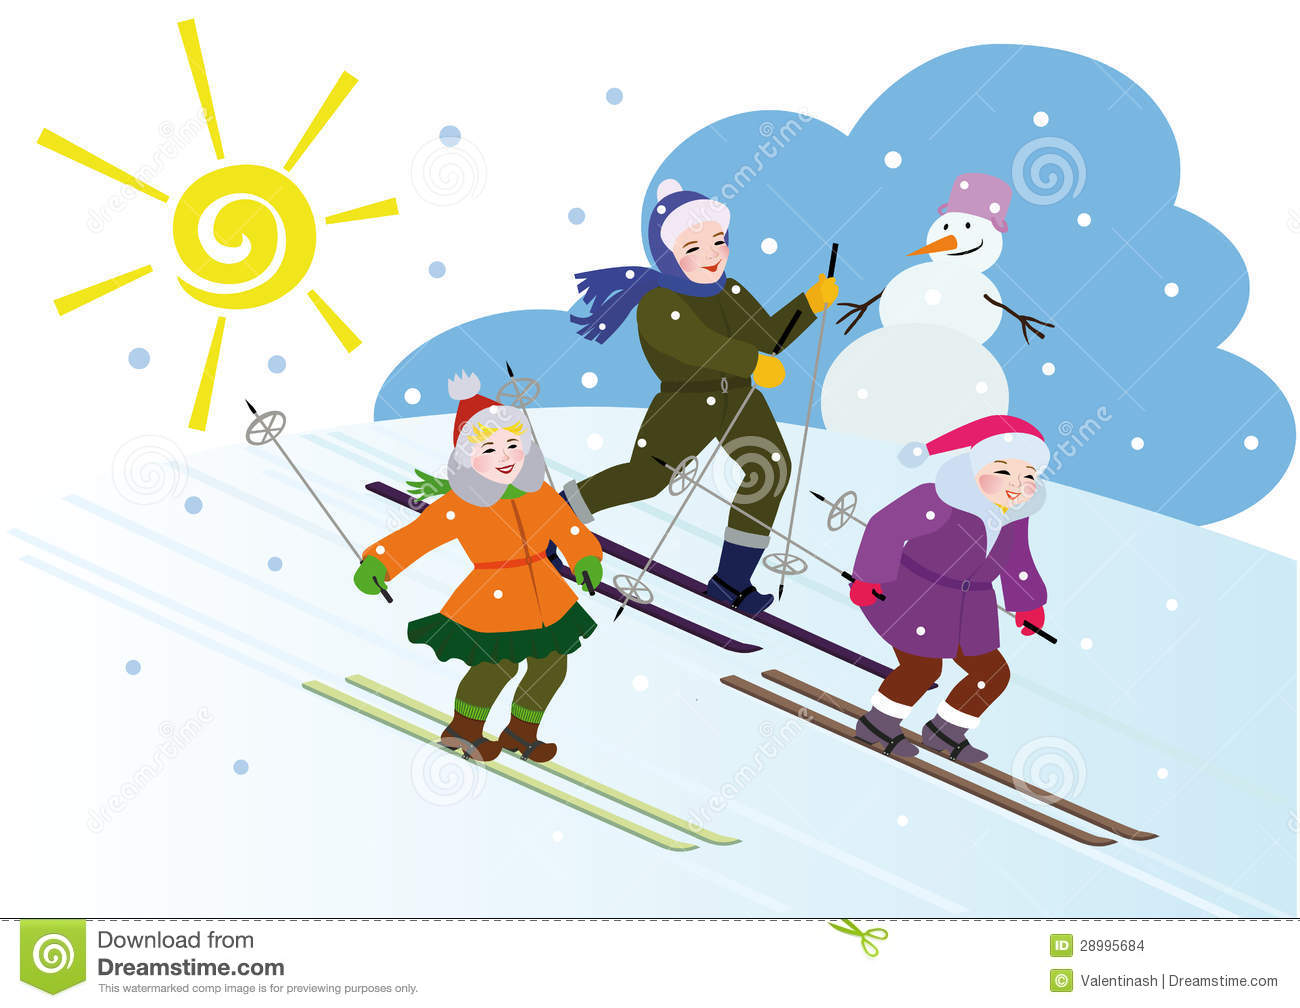 winter vacation clipart - photo #5